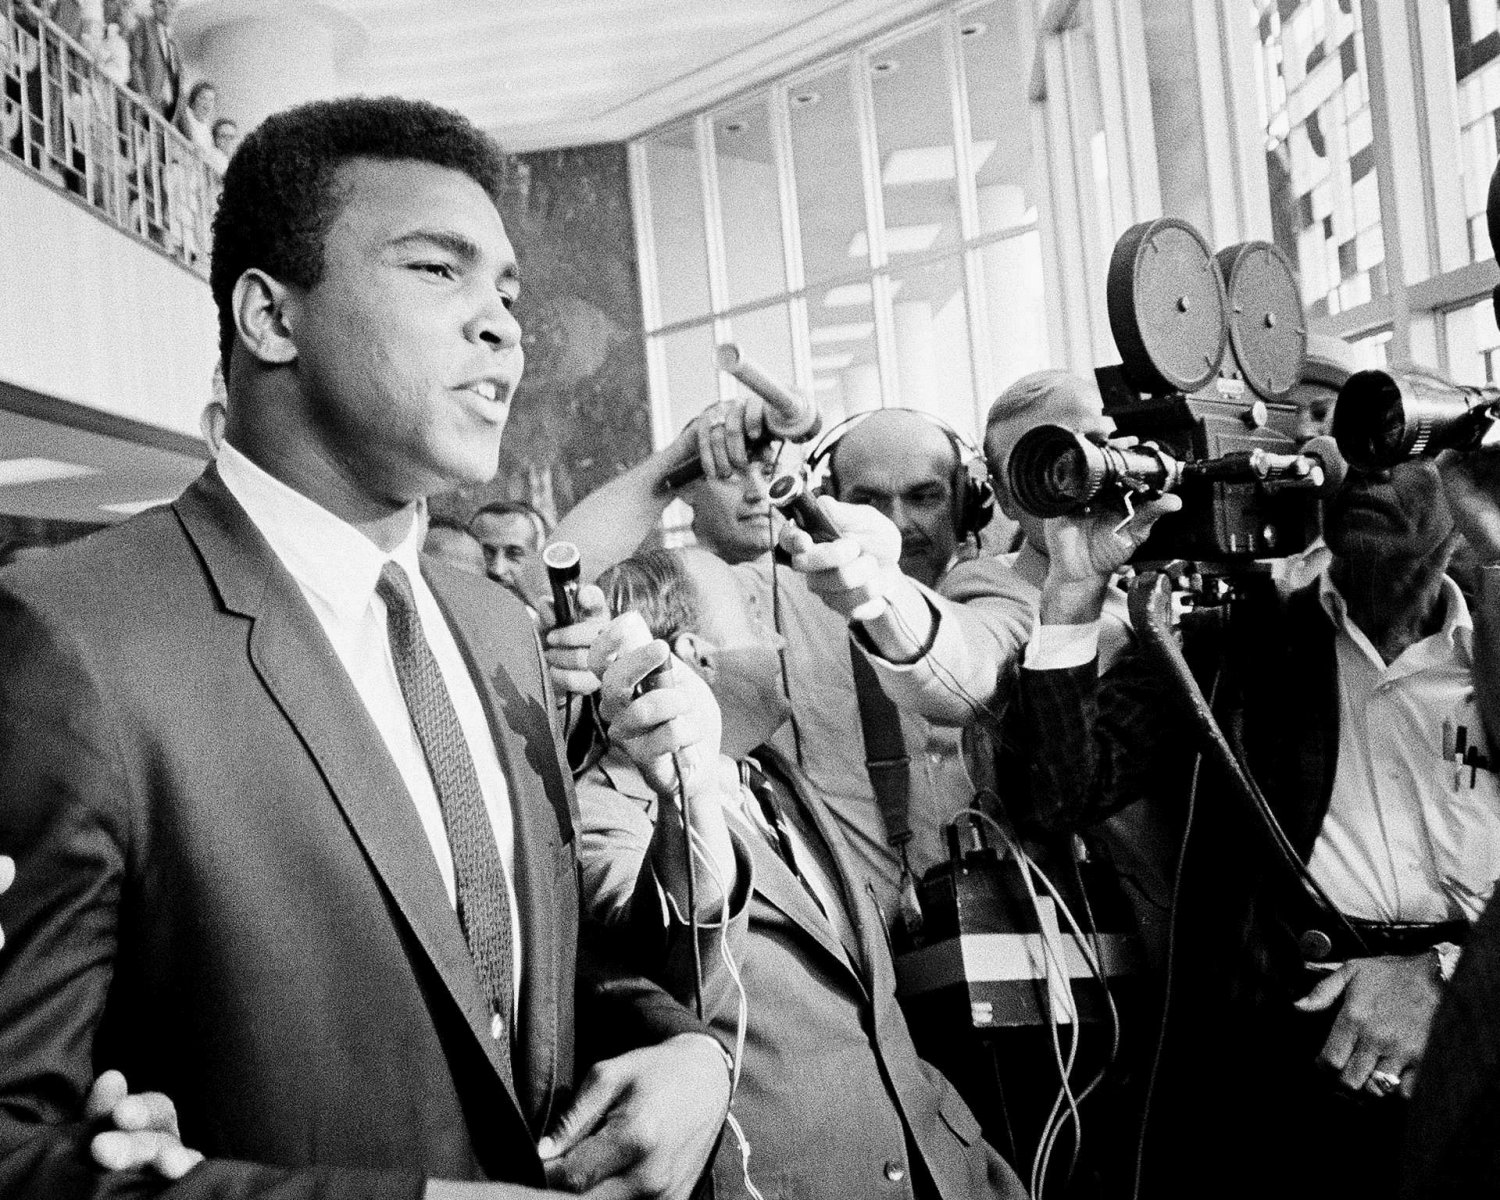 """MUHAMMAD ALI SAYS """"NO COMMENT"""" TO REPORTERS AT 1967 TRIAL - 8X10 PHOTO (ZY-139)"""